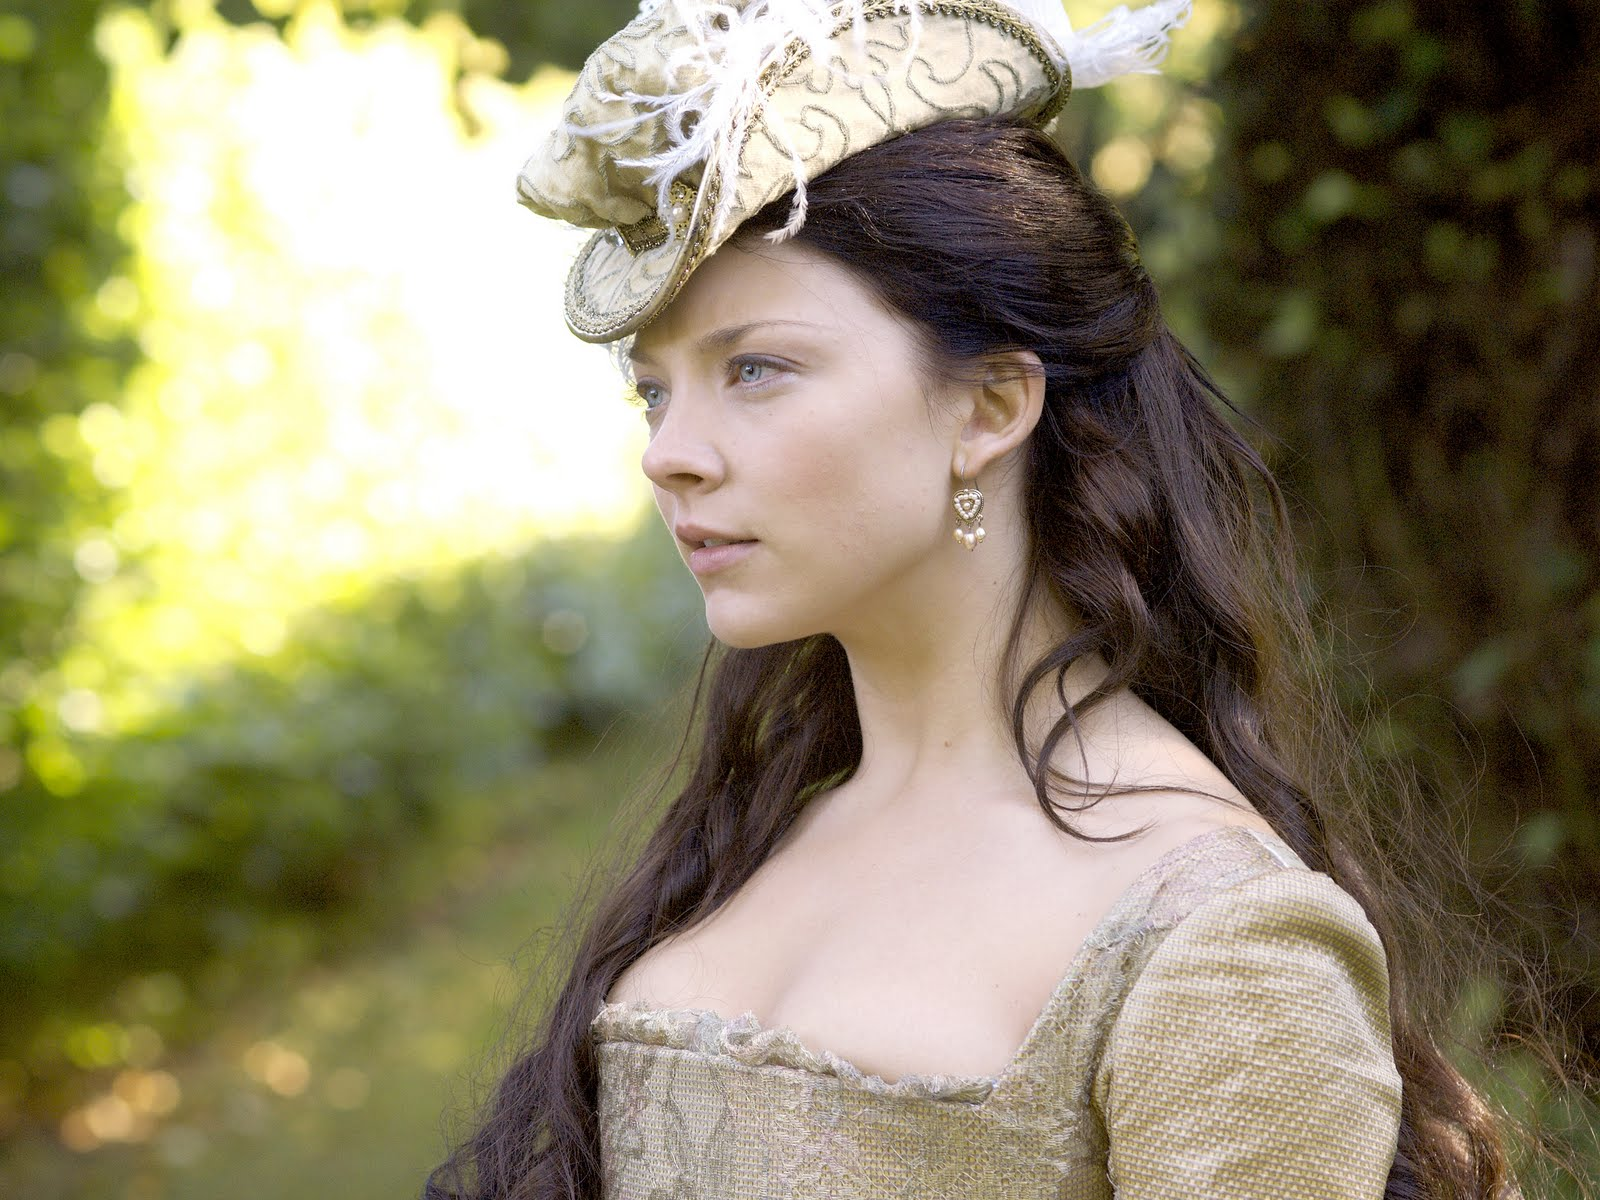 Natalie Dormer As Anne Boleyn Natalie Dormer As Anne Boleyn